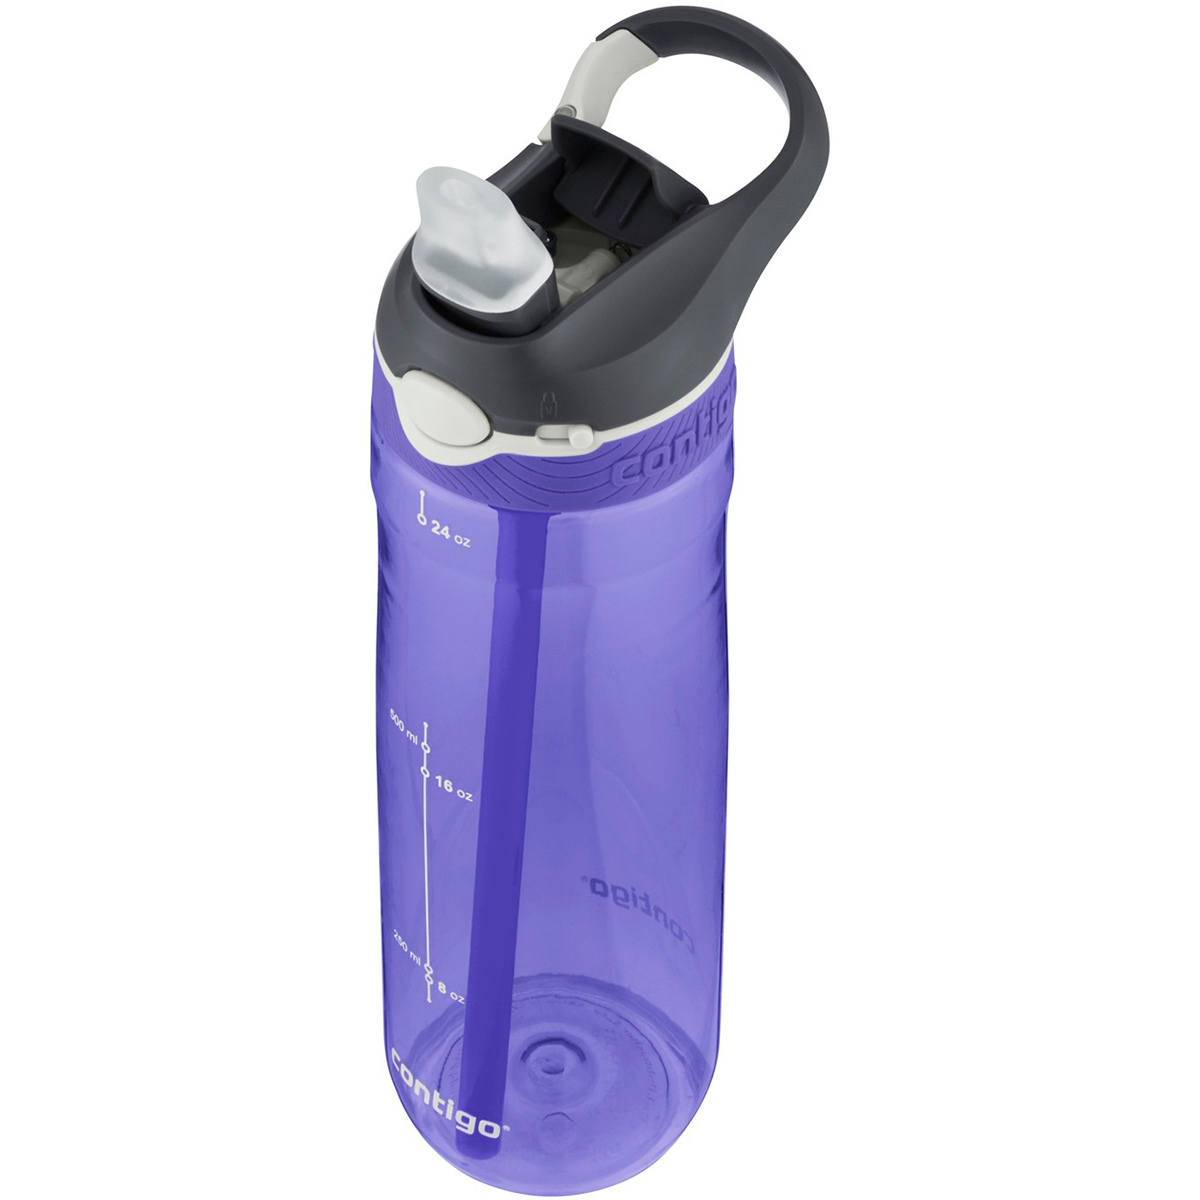 Contigo-24-oz-Ashland-Autospout-Water-Bottle miniature 10